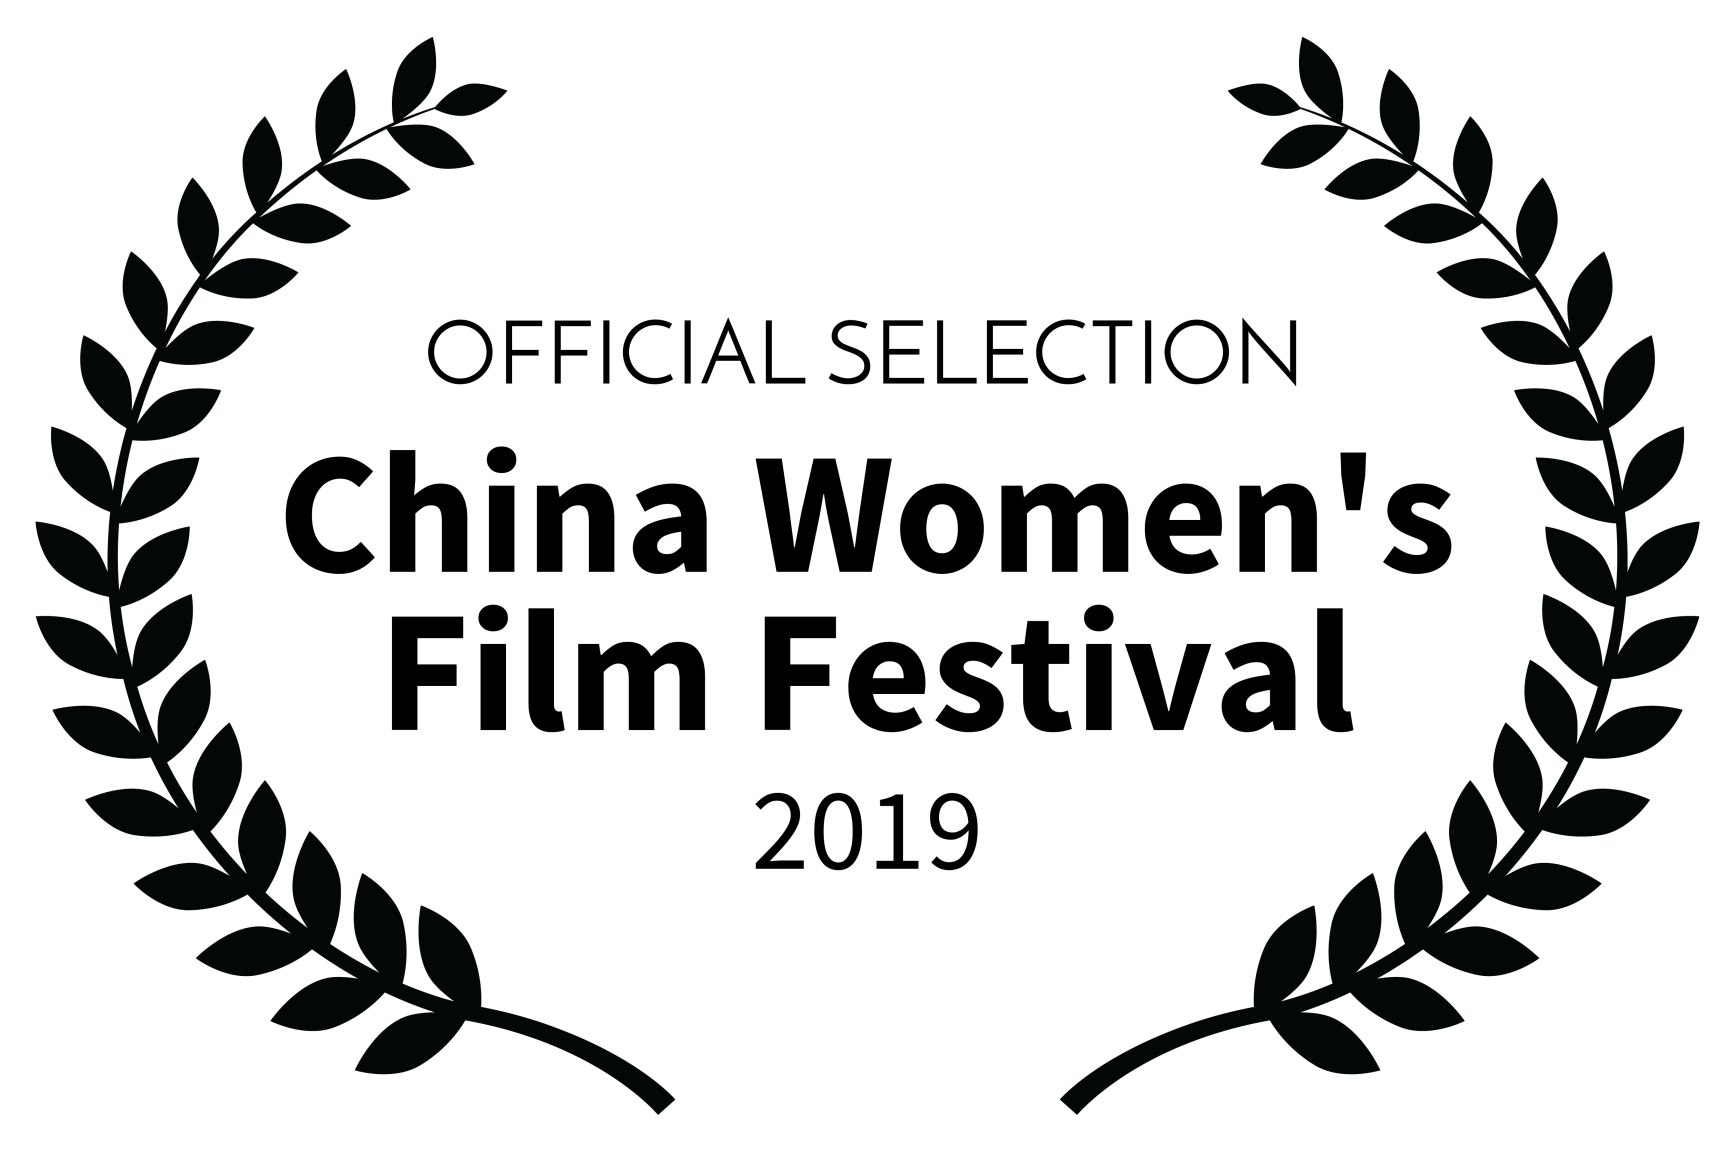 OFFICIAL SELECTION - China Womens Film Festival - 2019